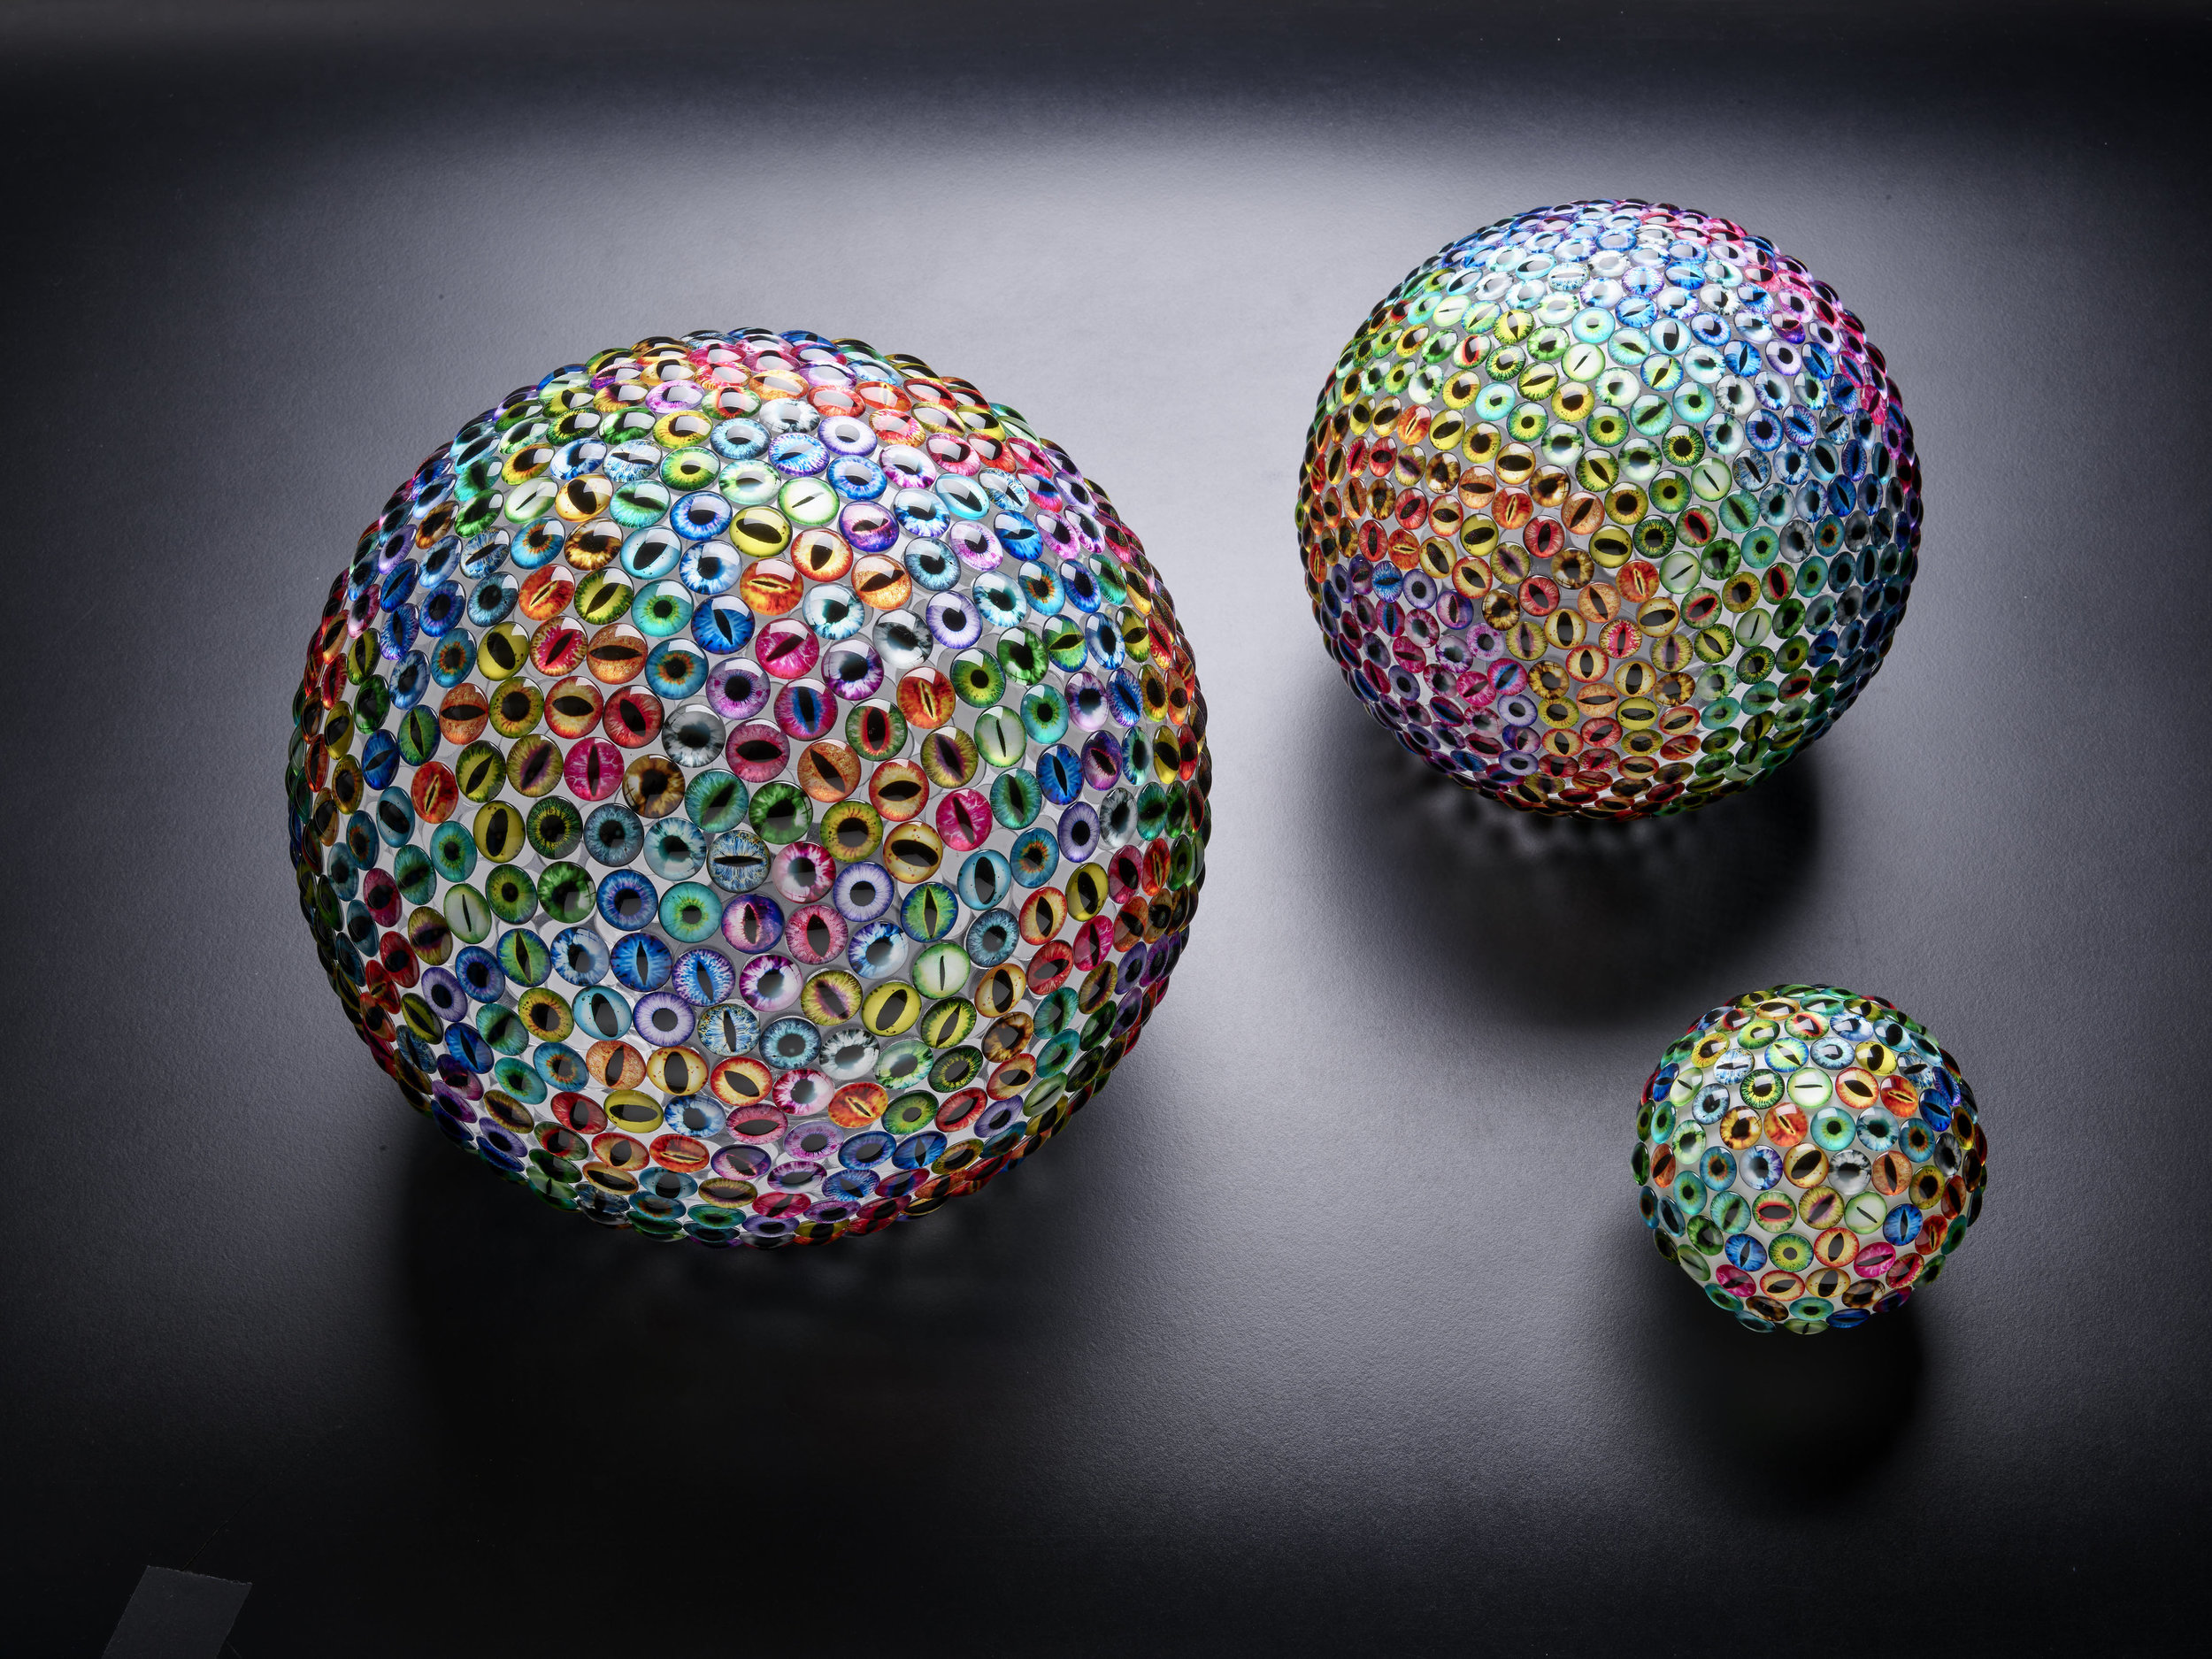 WHAT THEY HAVE SEEN (3 coloured balls)  2017_5712 copy.jpg